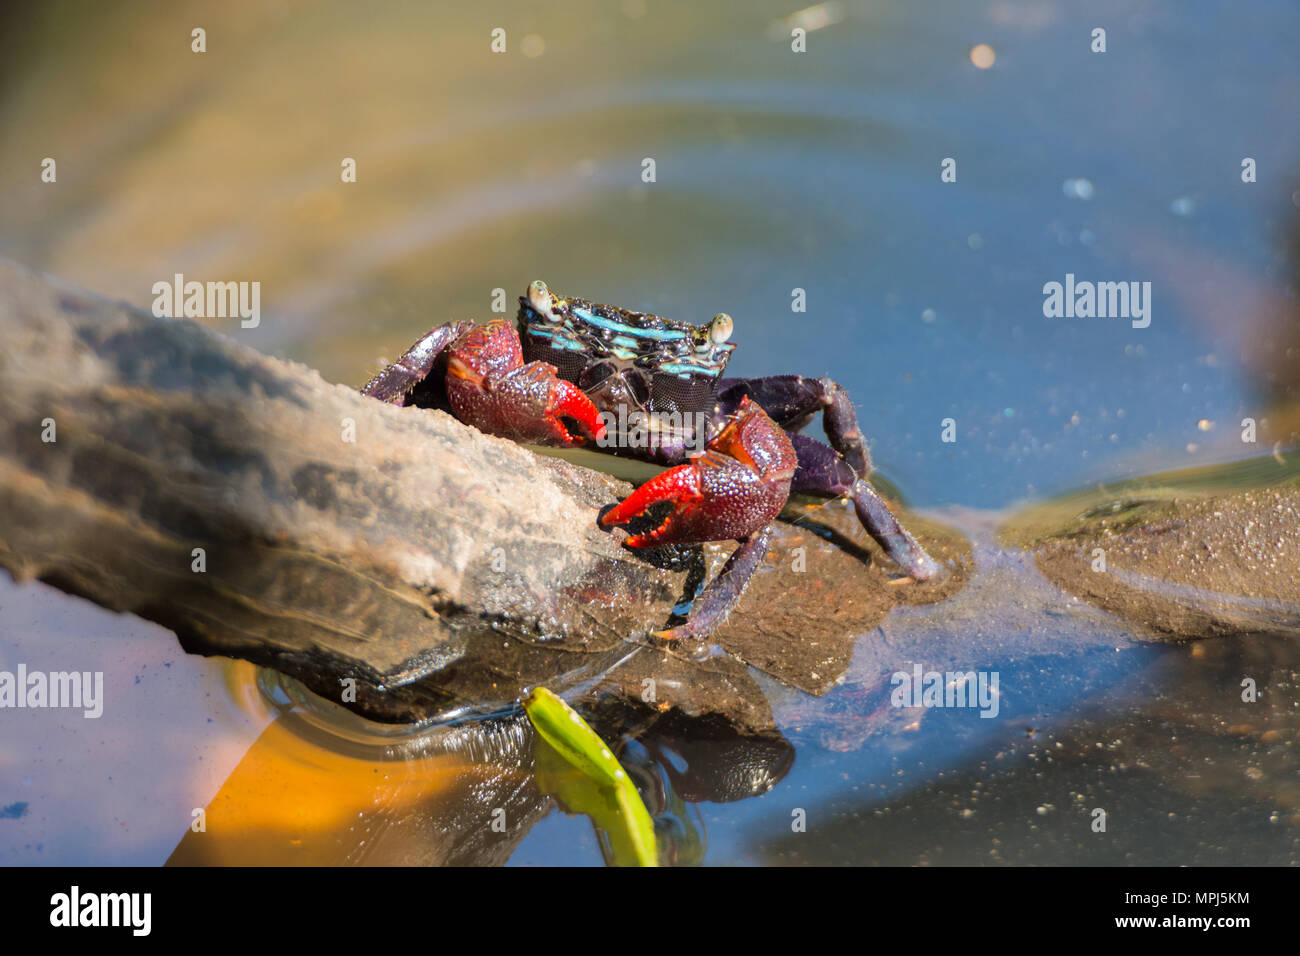 Beautiful Meder's Mangrove Crab holding trunk of tree in swamp - Stock Image